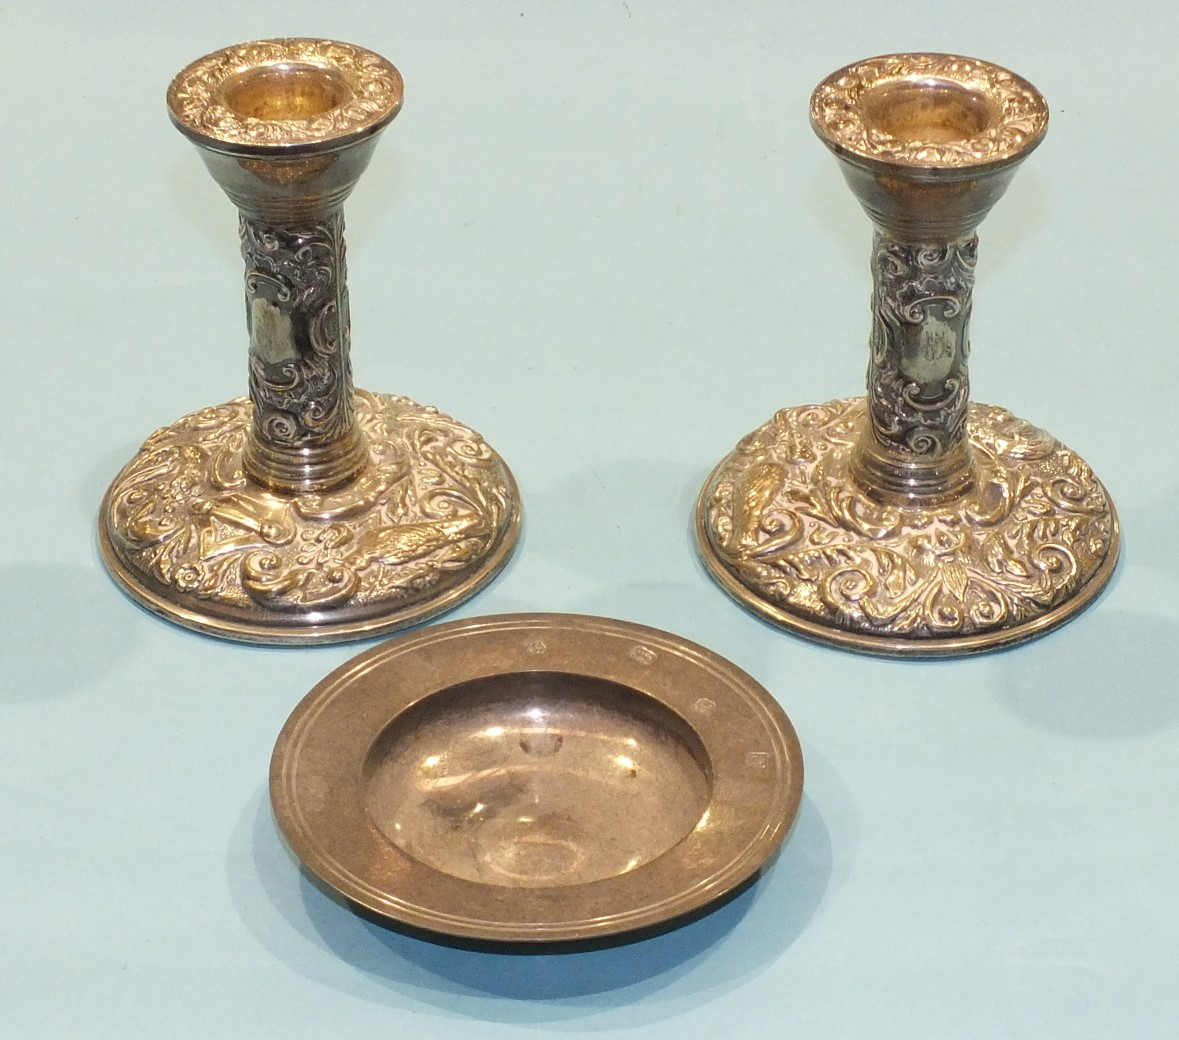 Lot 213 - A pair of modern foliate embossed short silver candlesticks, Birmingham 1980, 11cm high and a